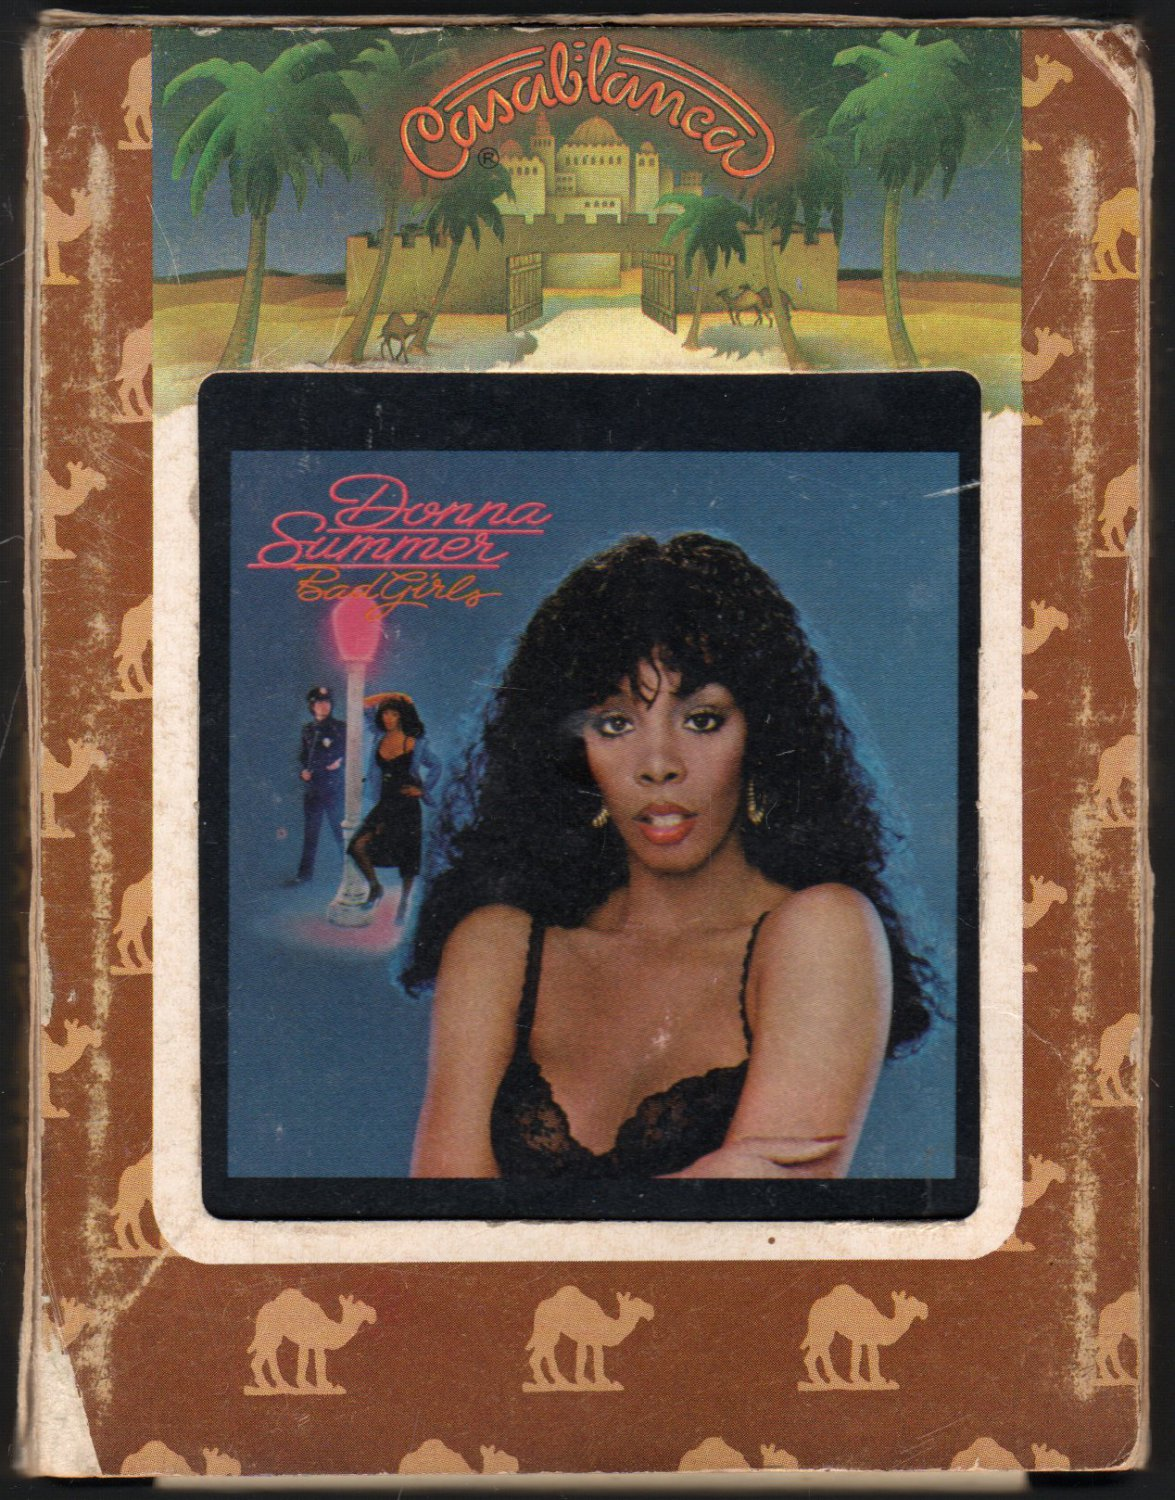 Donna Summer - Bad Girls 1979 CASABLANCA A2 8-TRACK TAPE